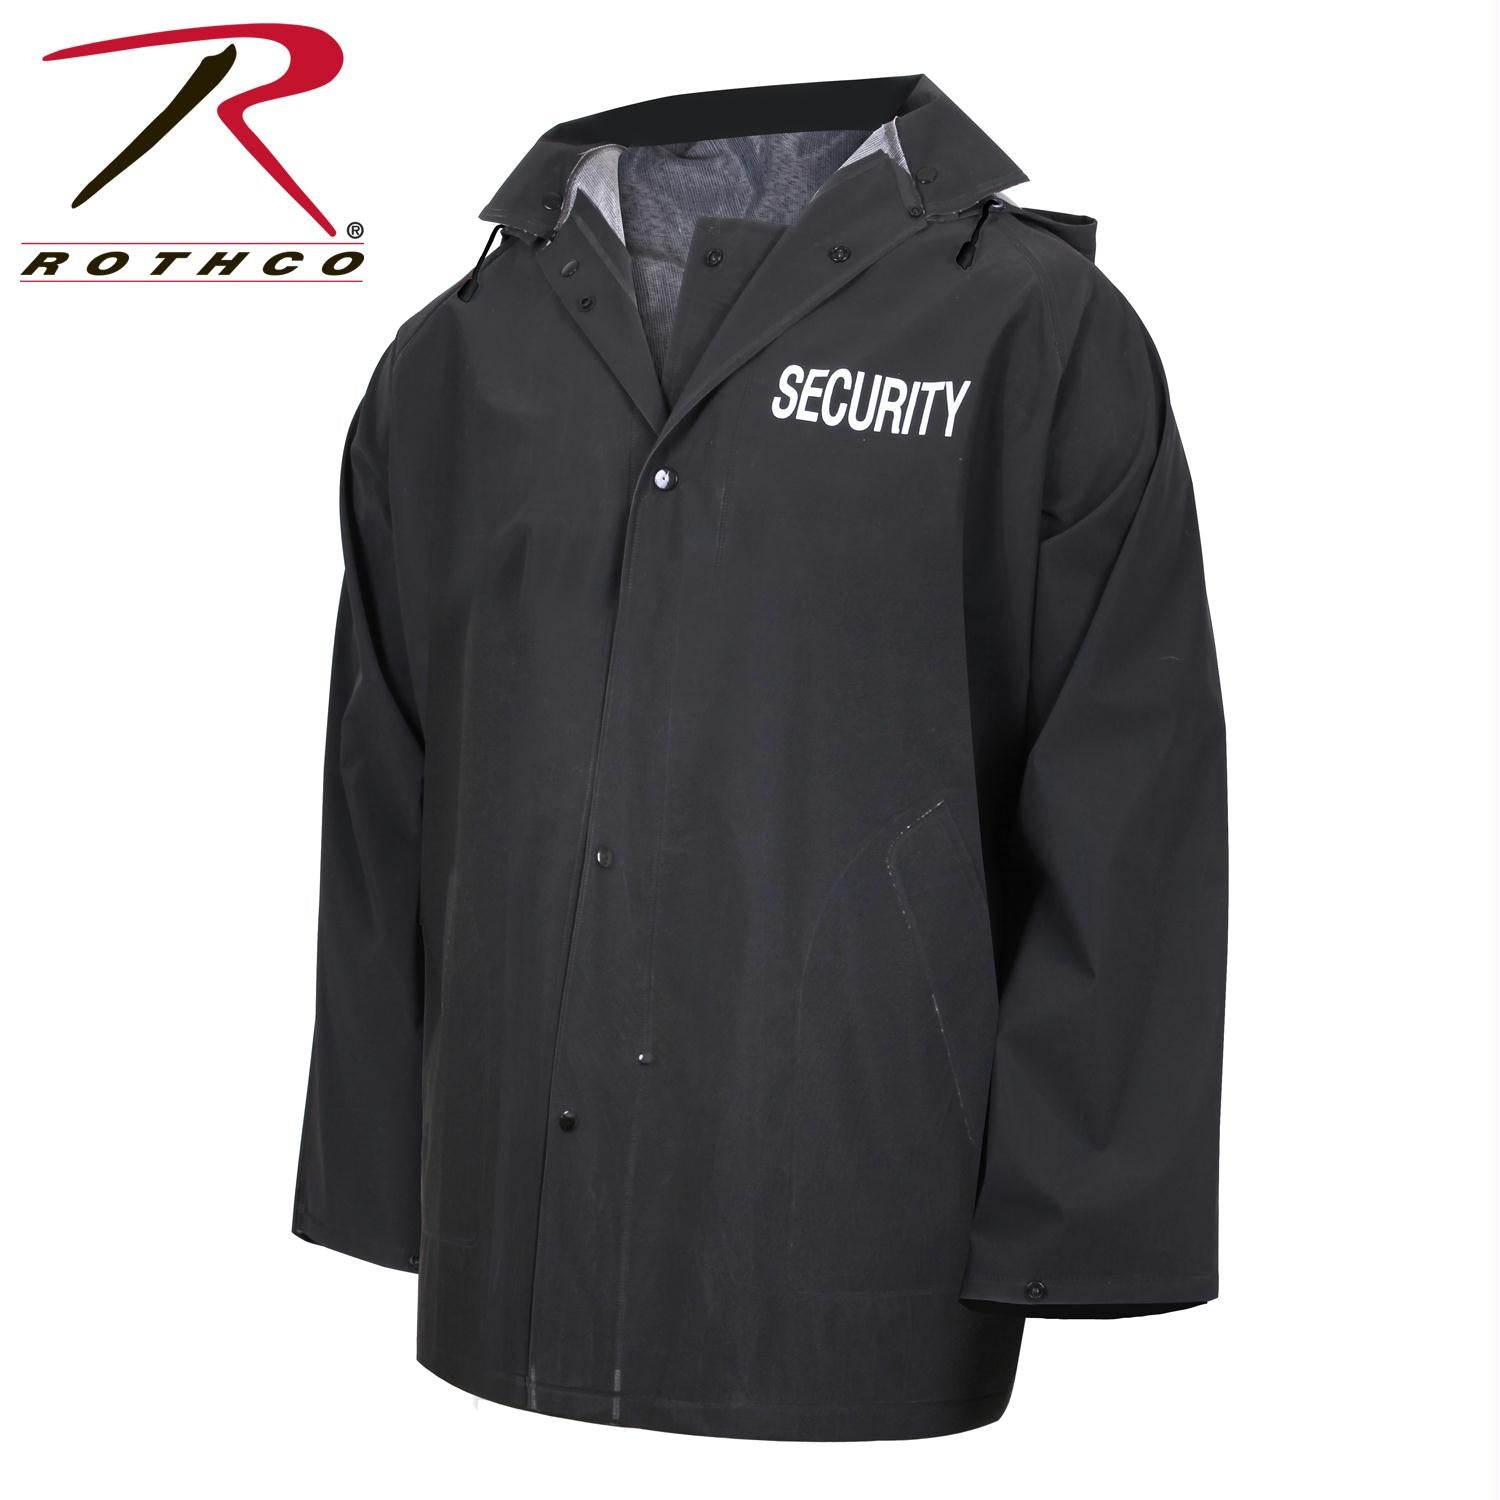 Rothco Security Rain Jacket - M